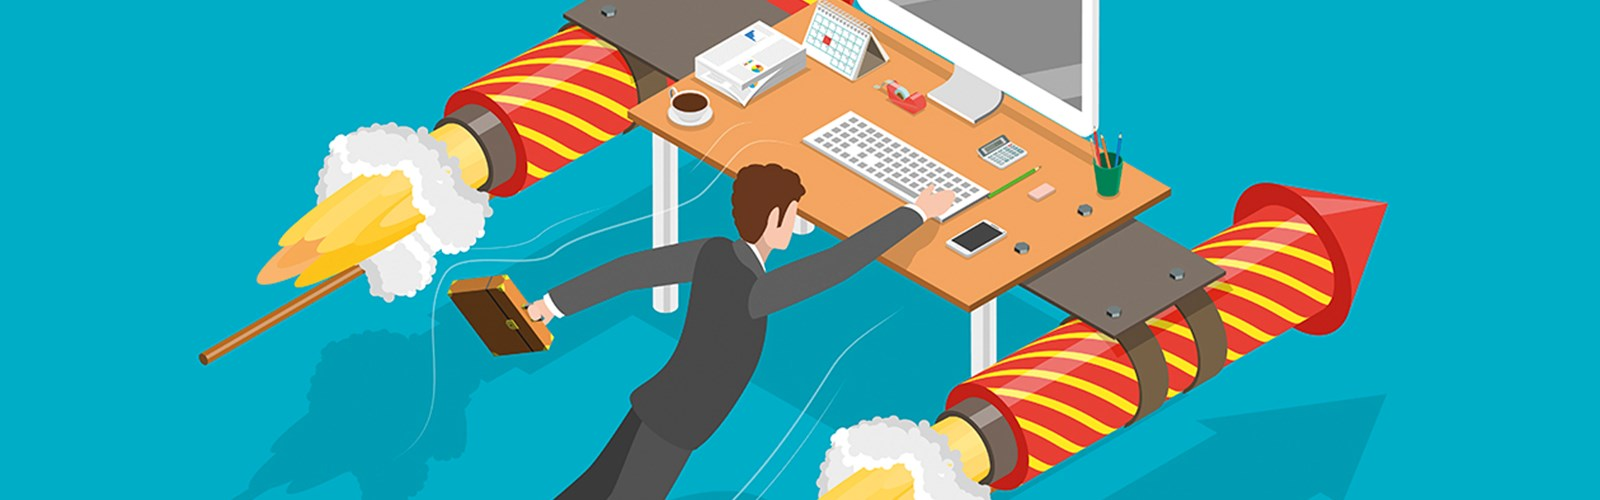 Illustration of a manager and their desk taking flight – with rockets